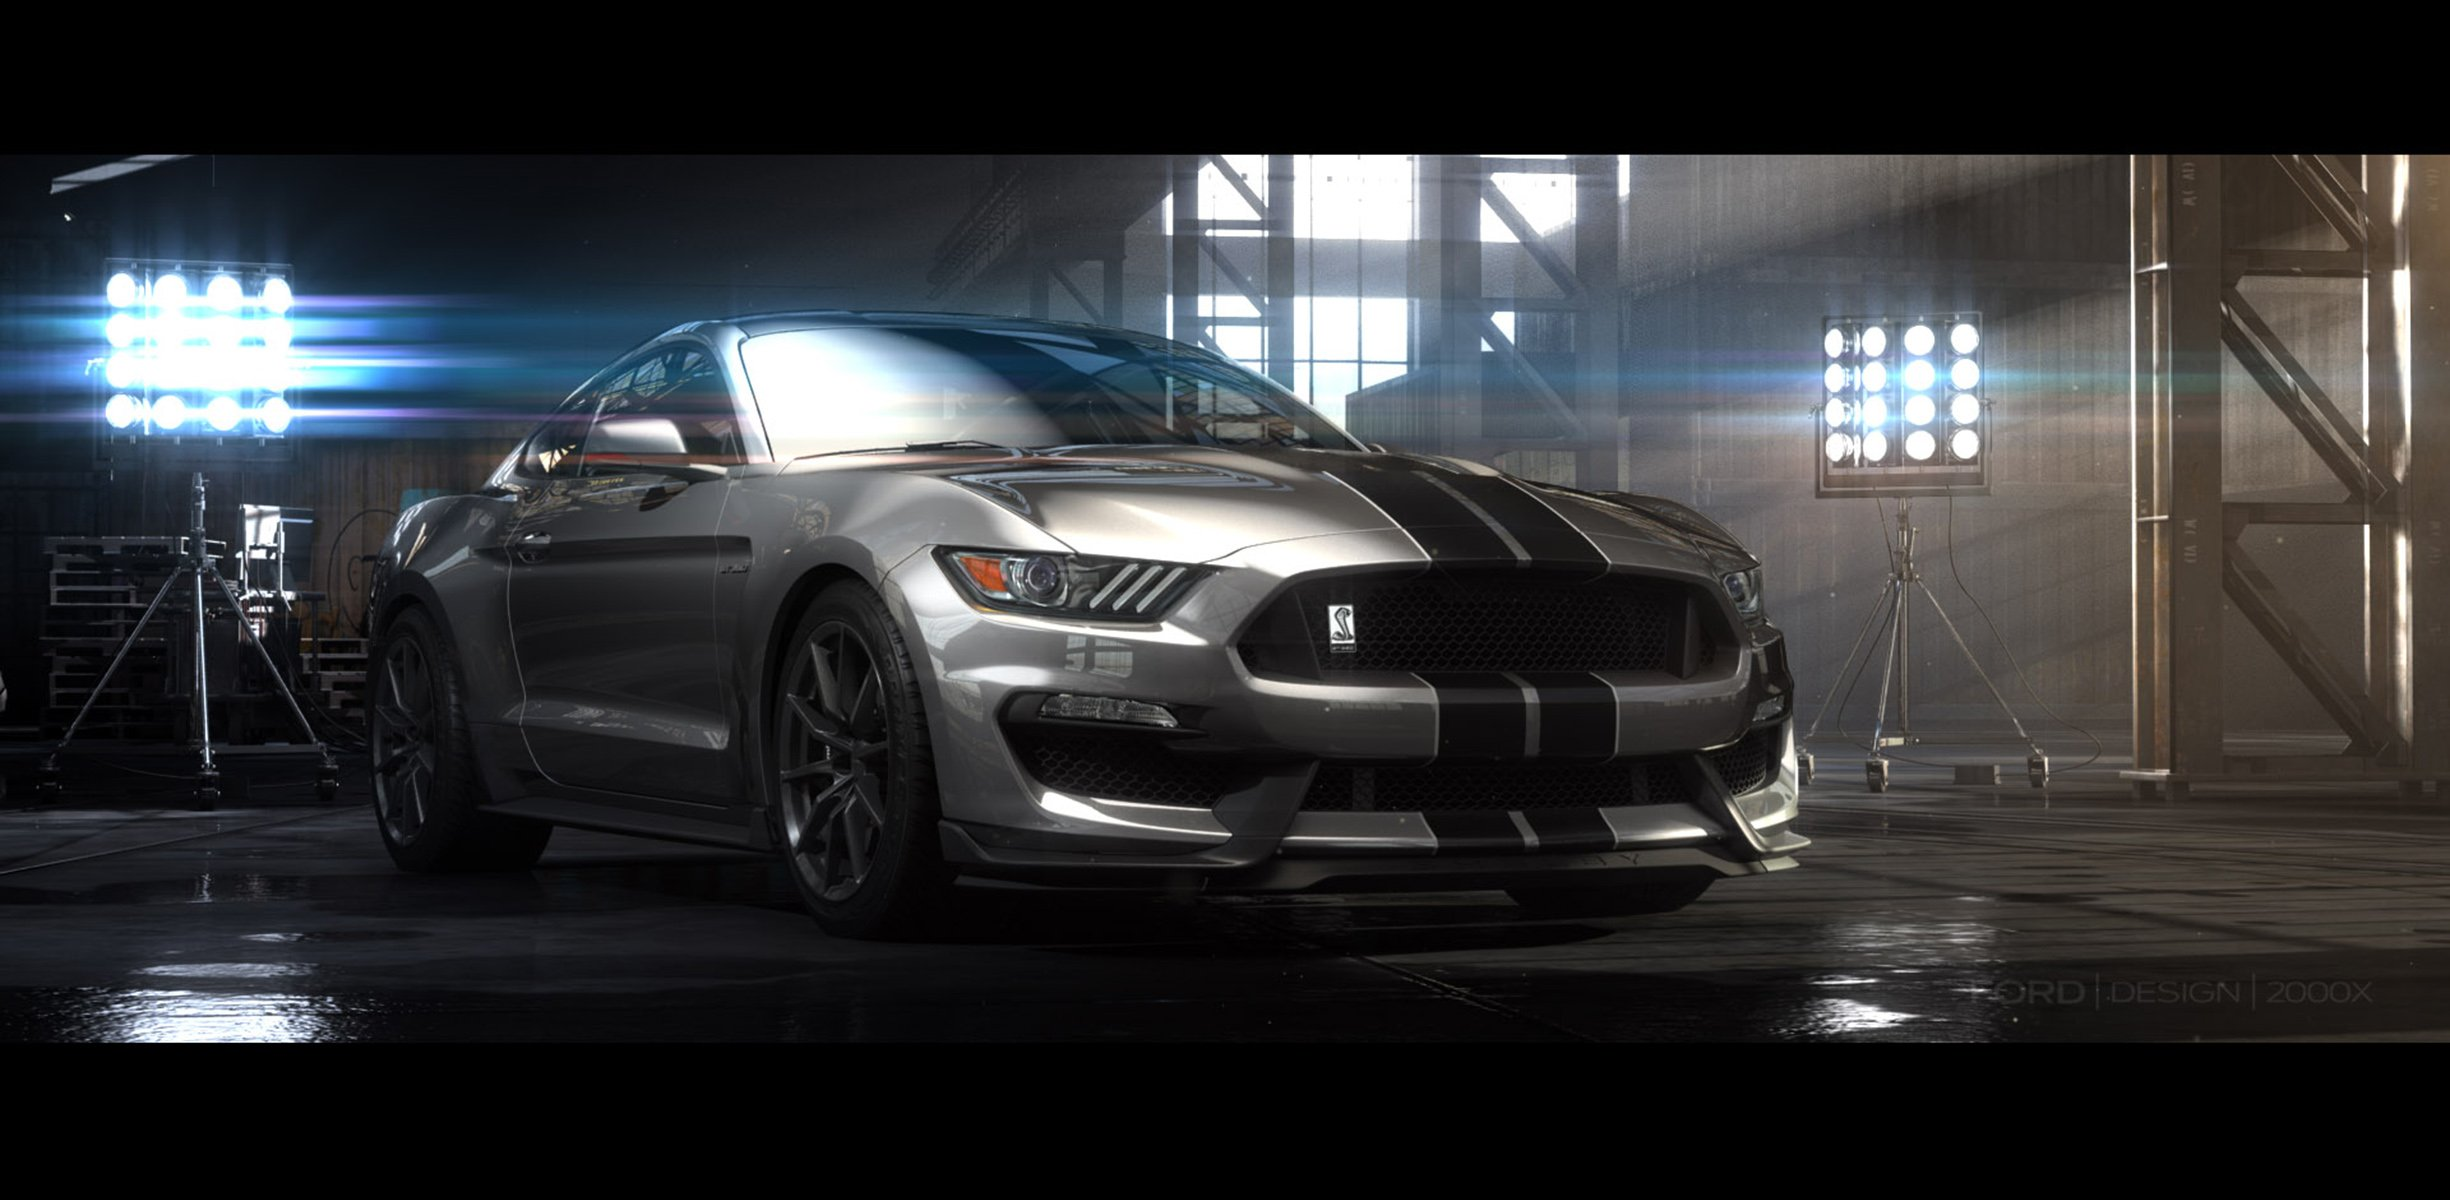 Ford Mustang Gt Ss >> 2015 Ford Mustang Shelby GT350 revealed: 5.2-litre flat-plane V8 to generate more than 370kW ...